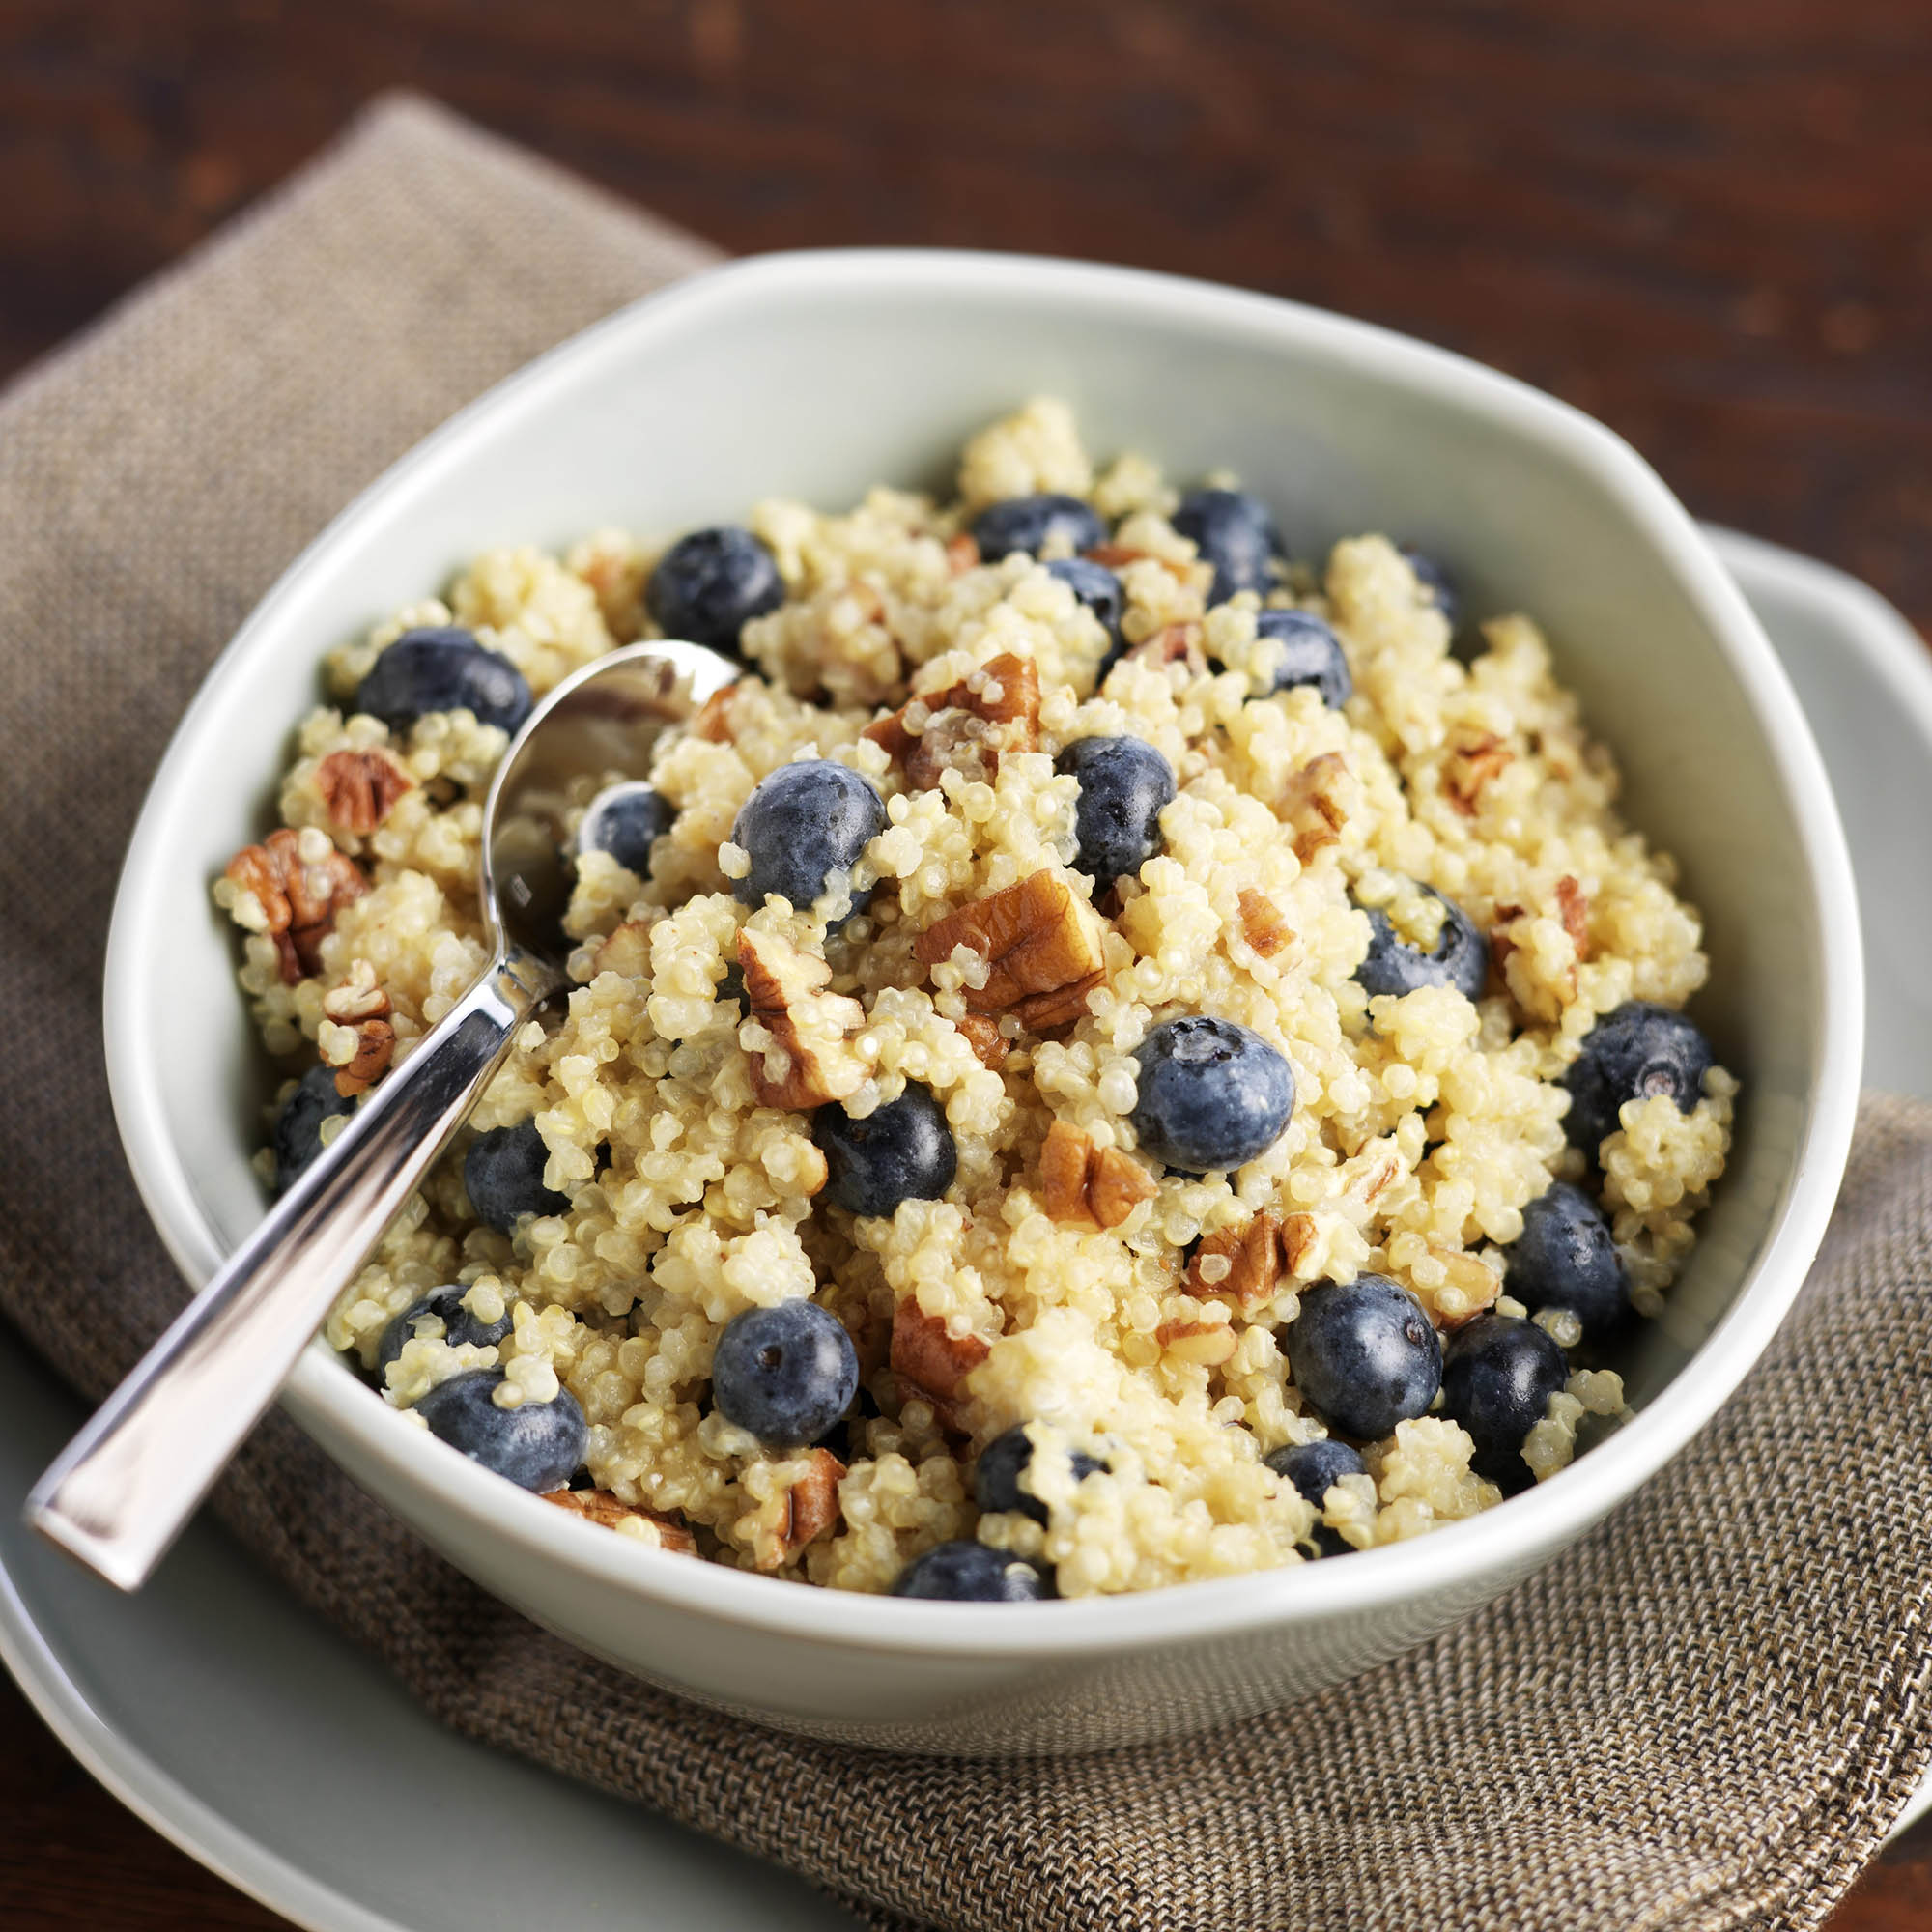 Blueberry quinoa breakfast cereal driscolls ccuart Choice Image